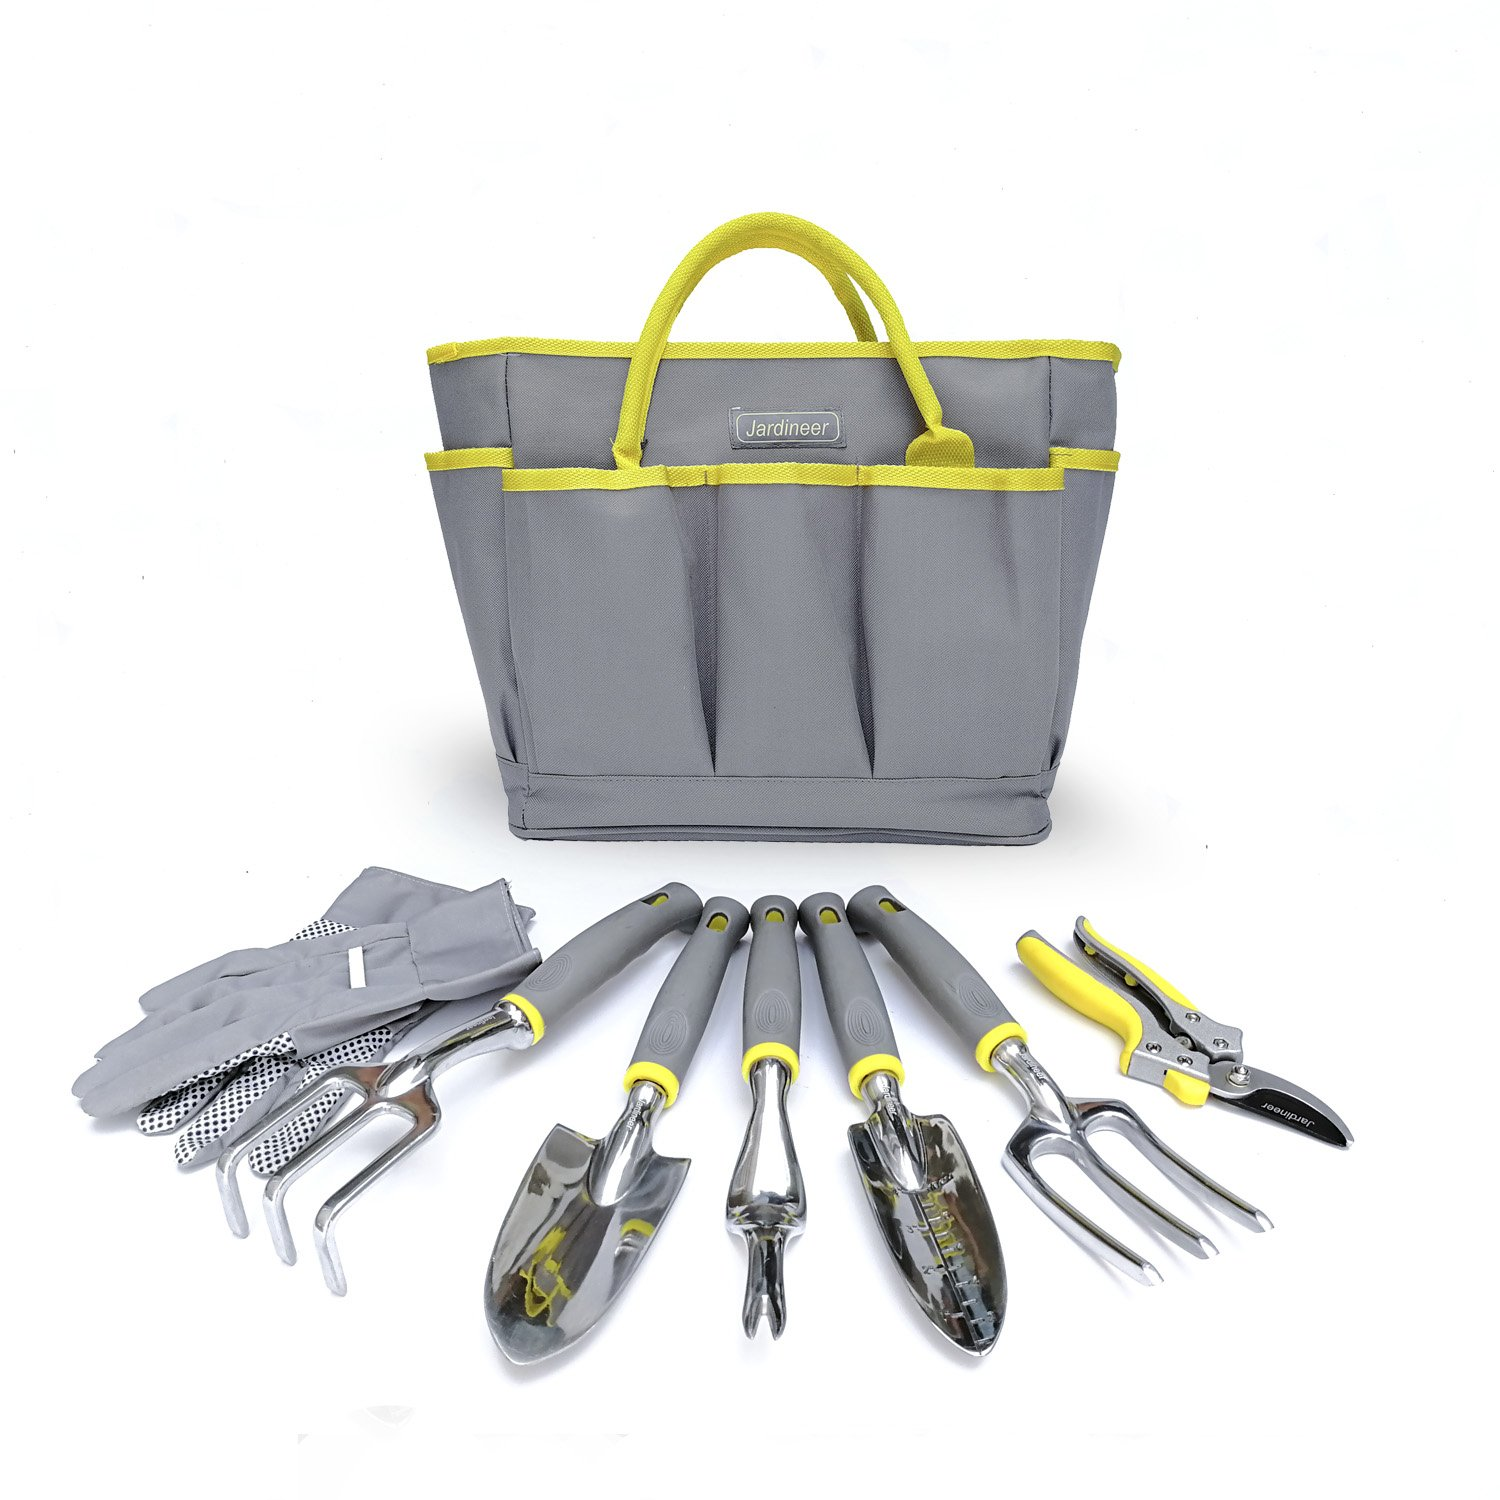 8 Piece Garden Tool Sets, Heavy Duty Gardening Tools with Gardening Gloves, Tool Bag and Pruning Secateurs, Gardener Gifts Jardineer